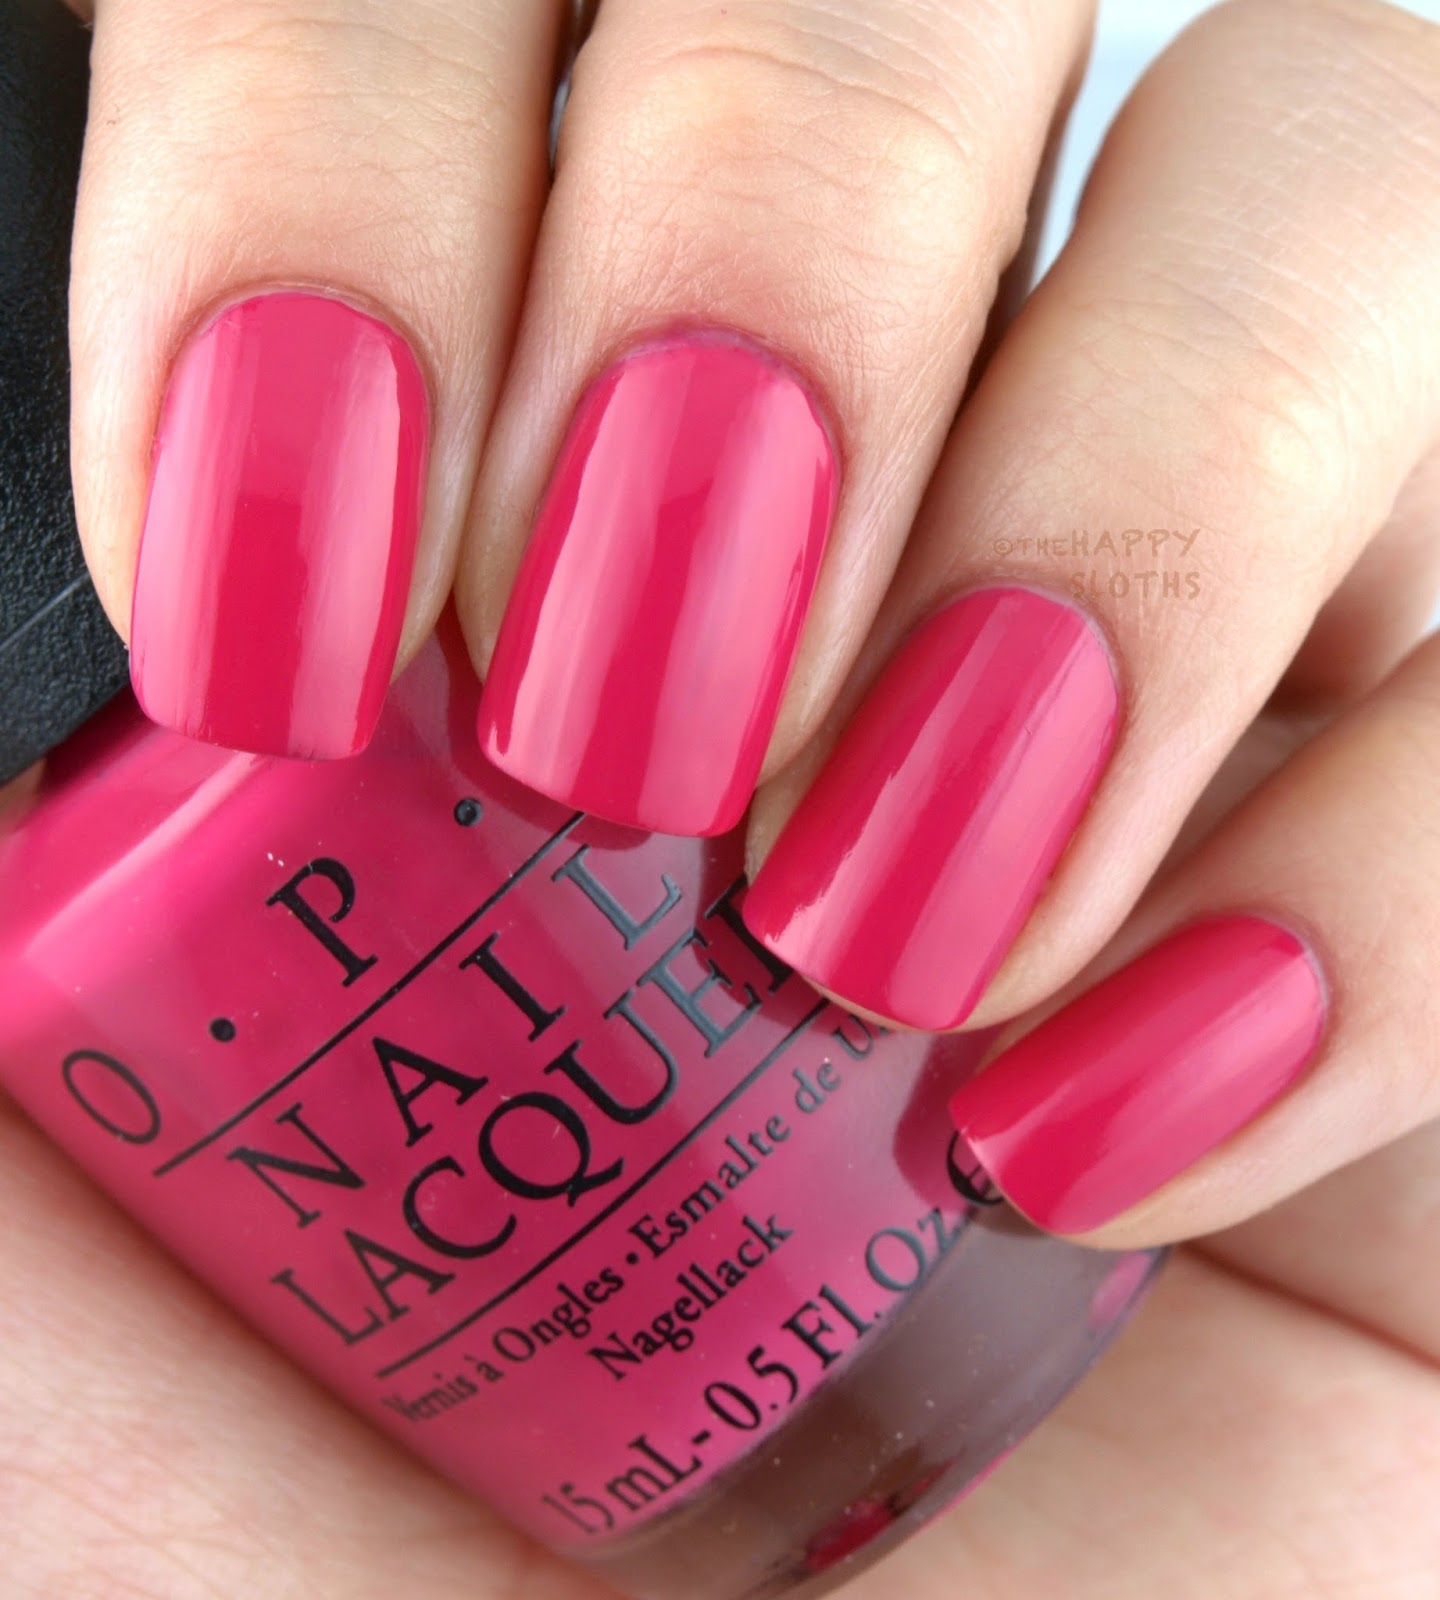 Opi Holiday 2017 Breakfast At Tiffany S Collection Review And Swatches Apartment For Two